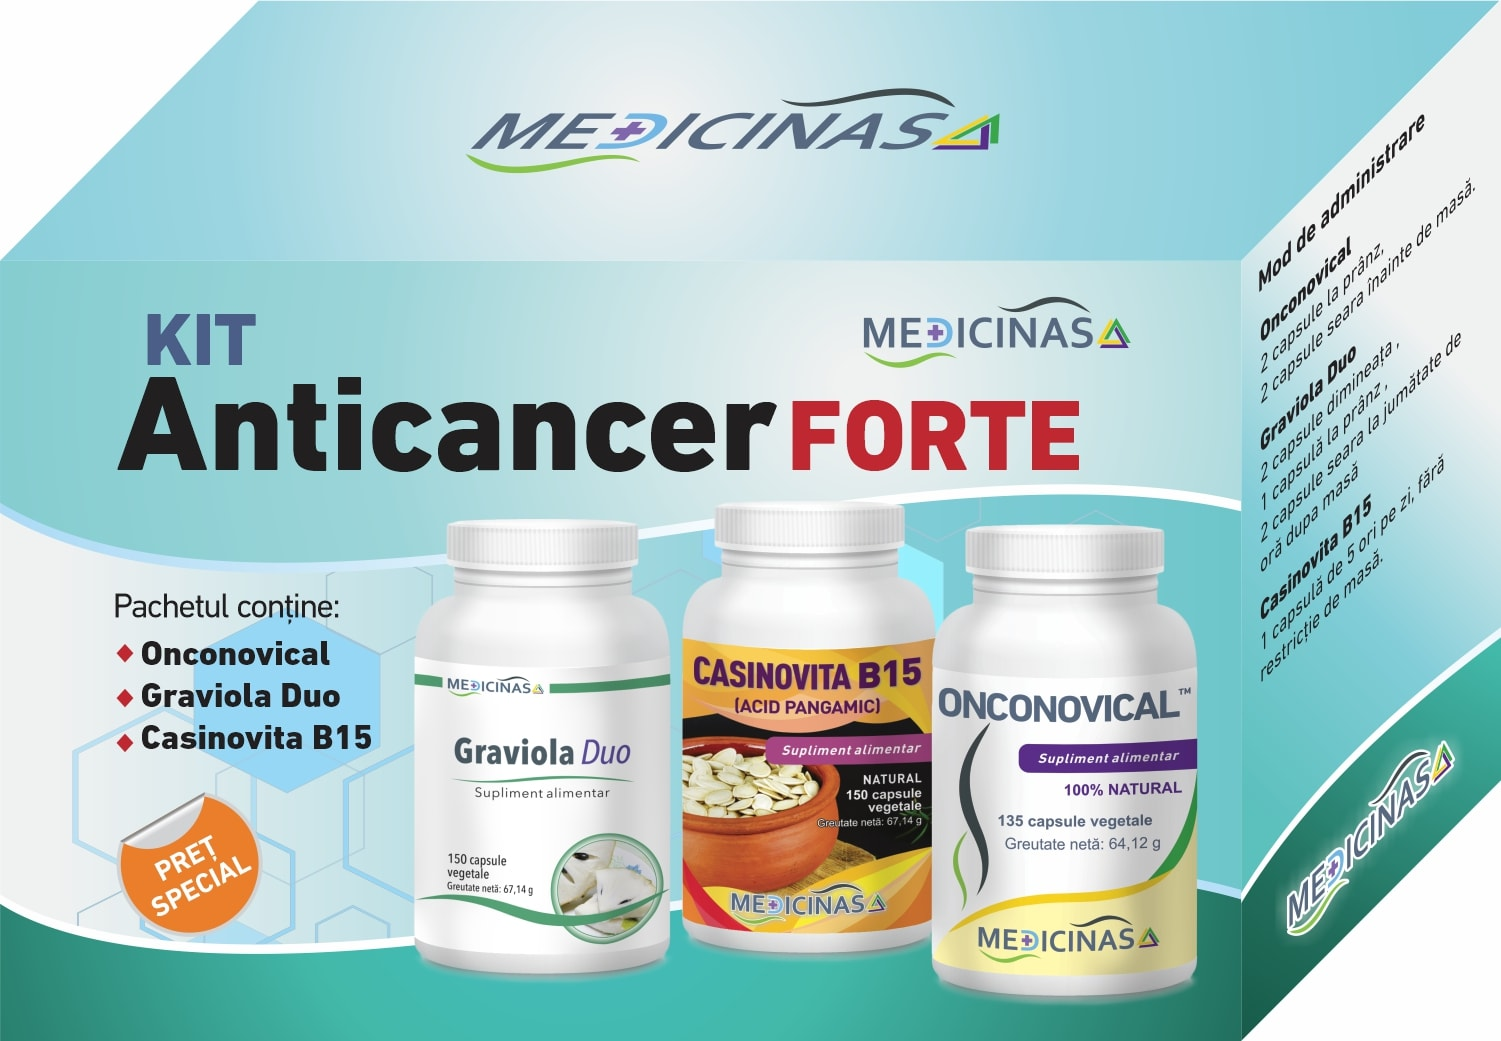 Kit Anticancer Forte